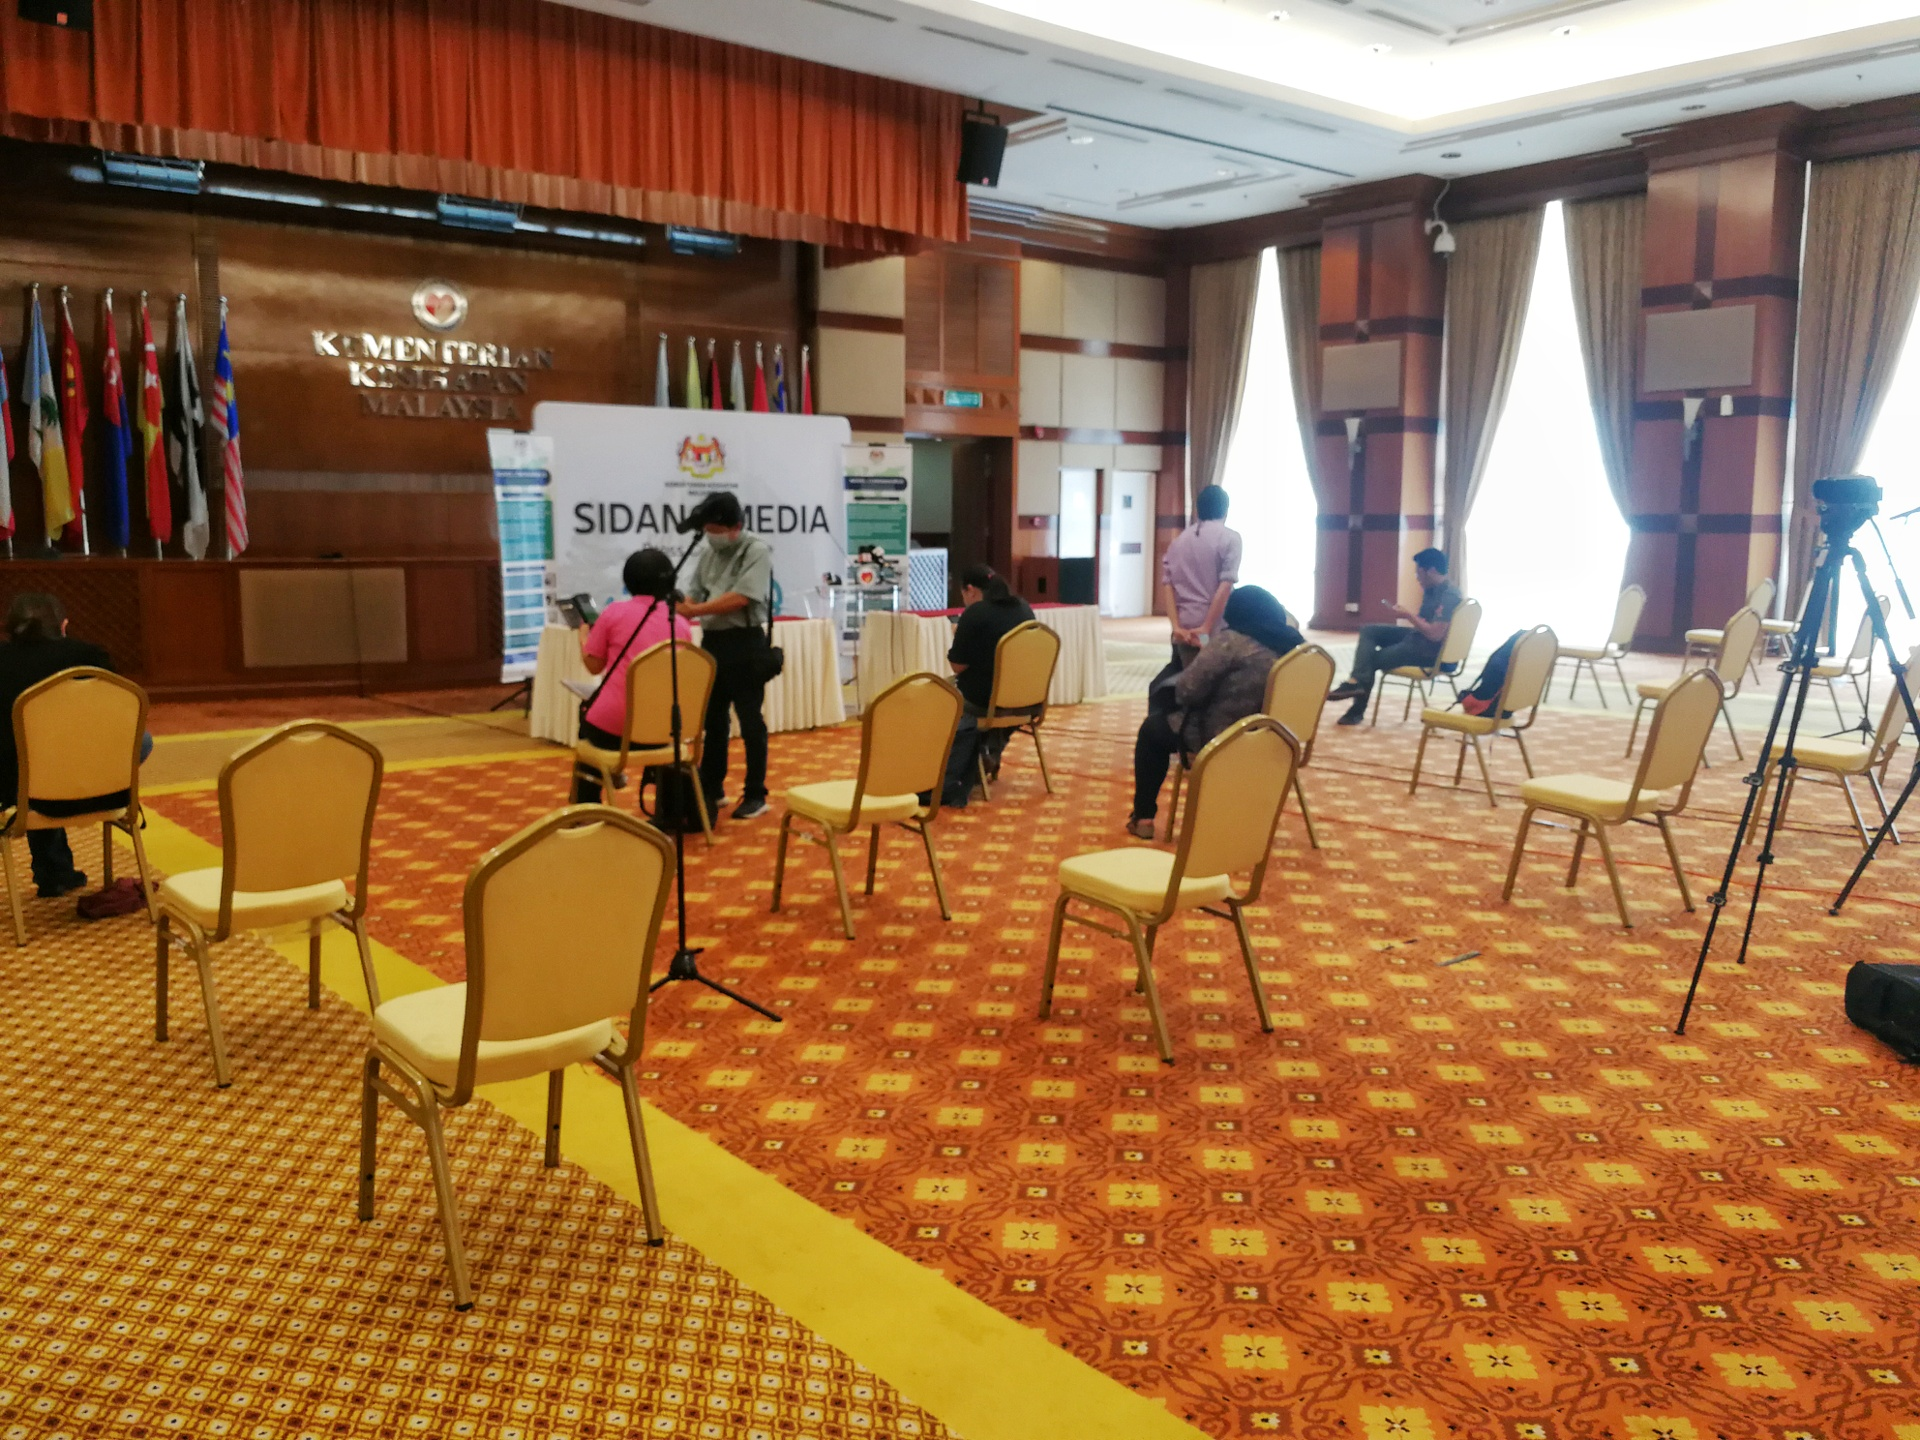 A general view of the seating arrangement for reporters ahead of a Health Ministry press conference in Putrajaya March 19, 2020. — Picture by Choo Choy May